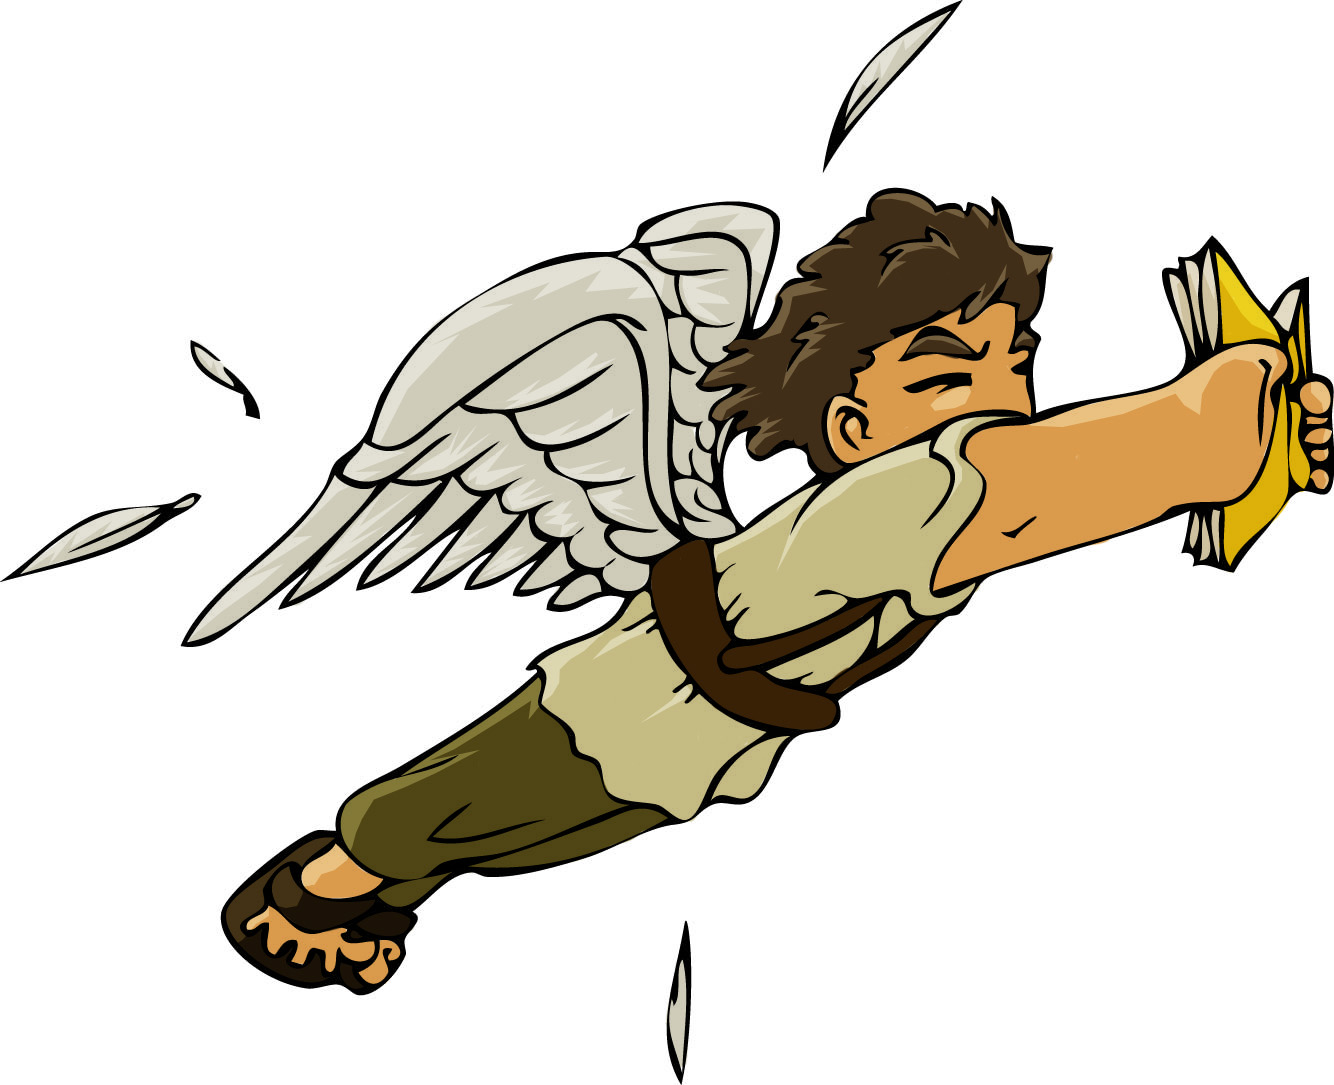 Daedalus clipart image royalty free library Free Icarus Cliparts, Download Free Clip Art, Free Clip Art on ... image royalty free library